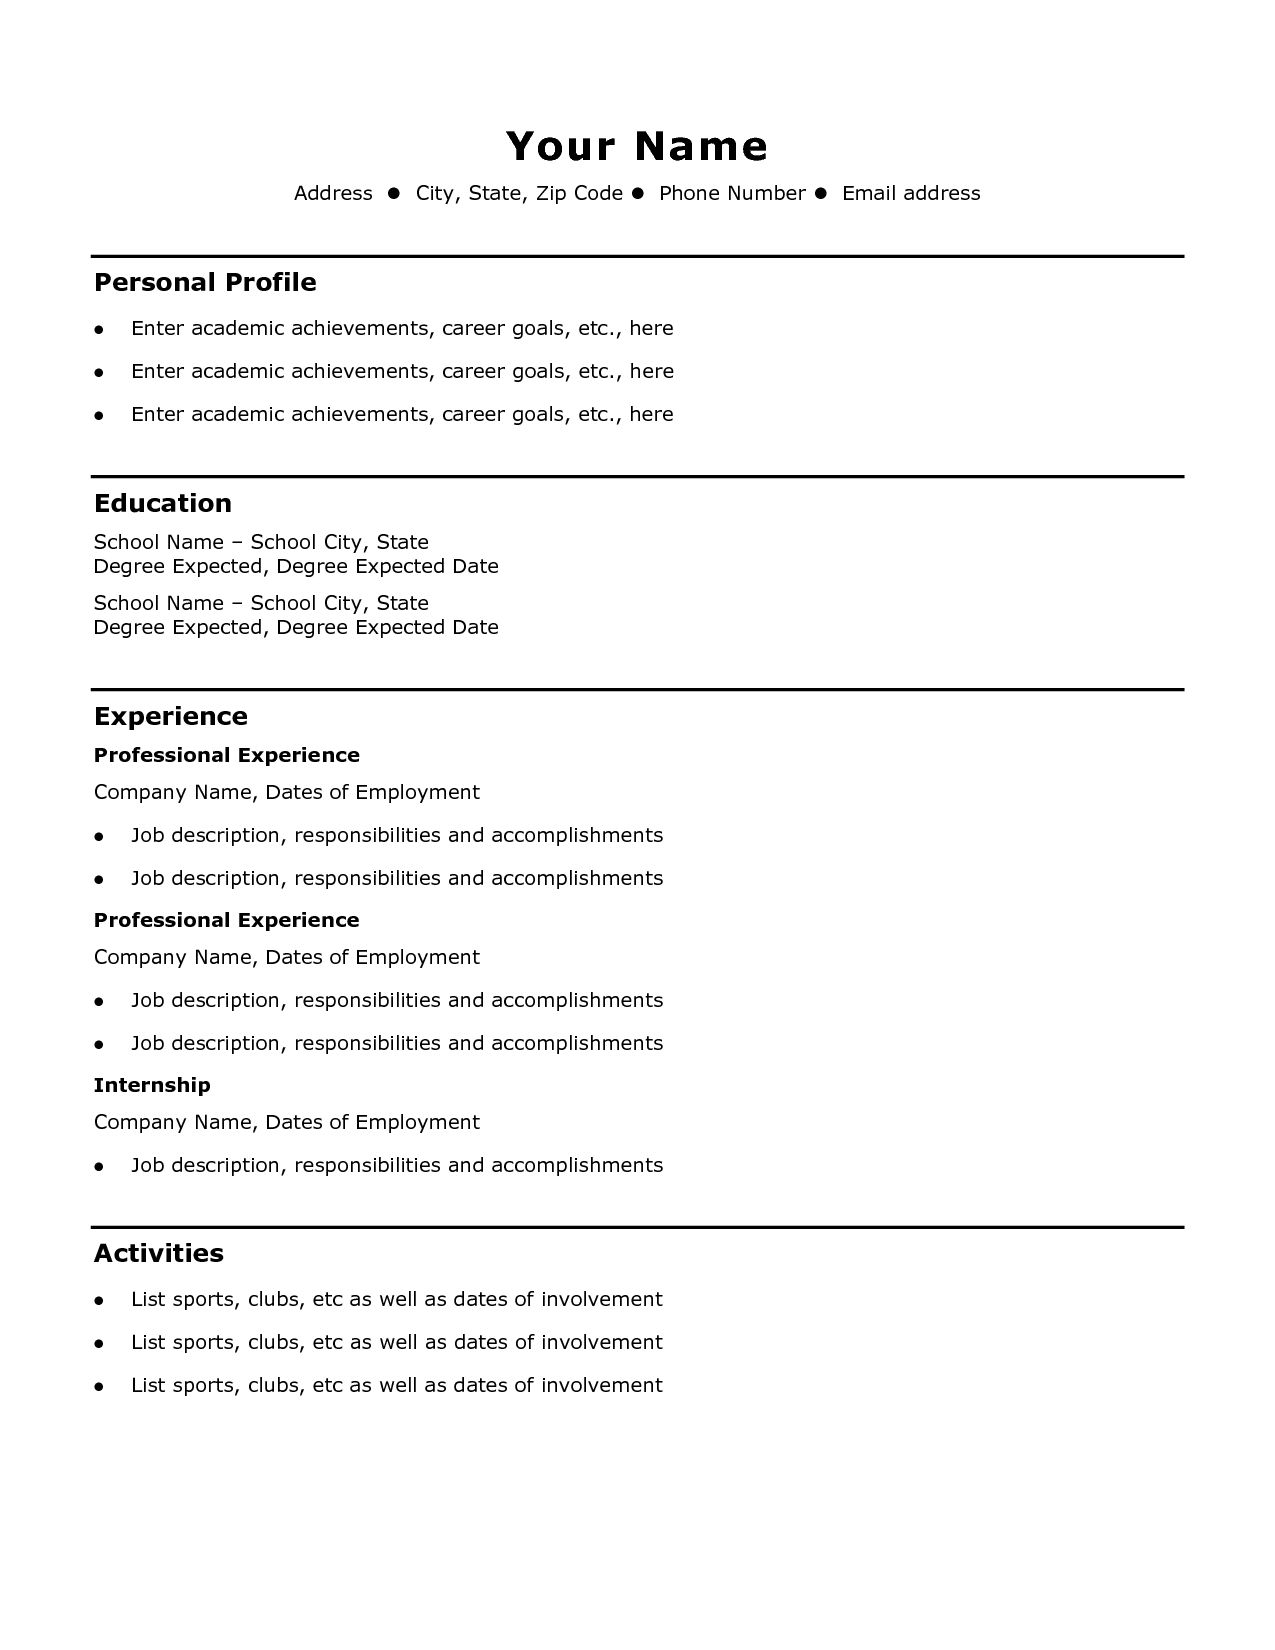 meaning resume curriculum vitae wikipedia letter samples